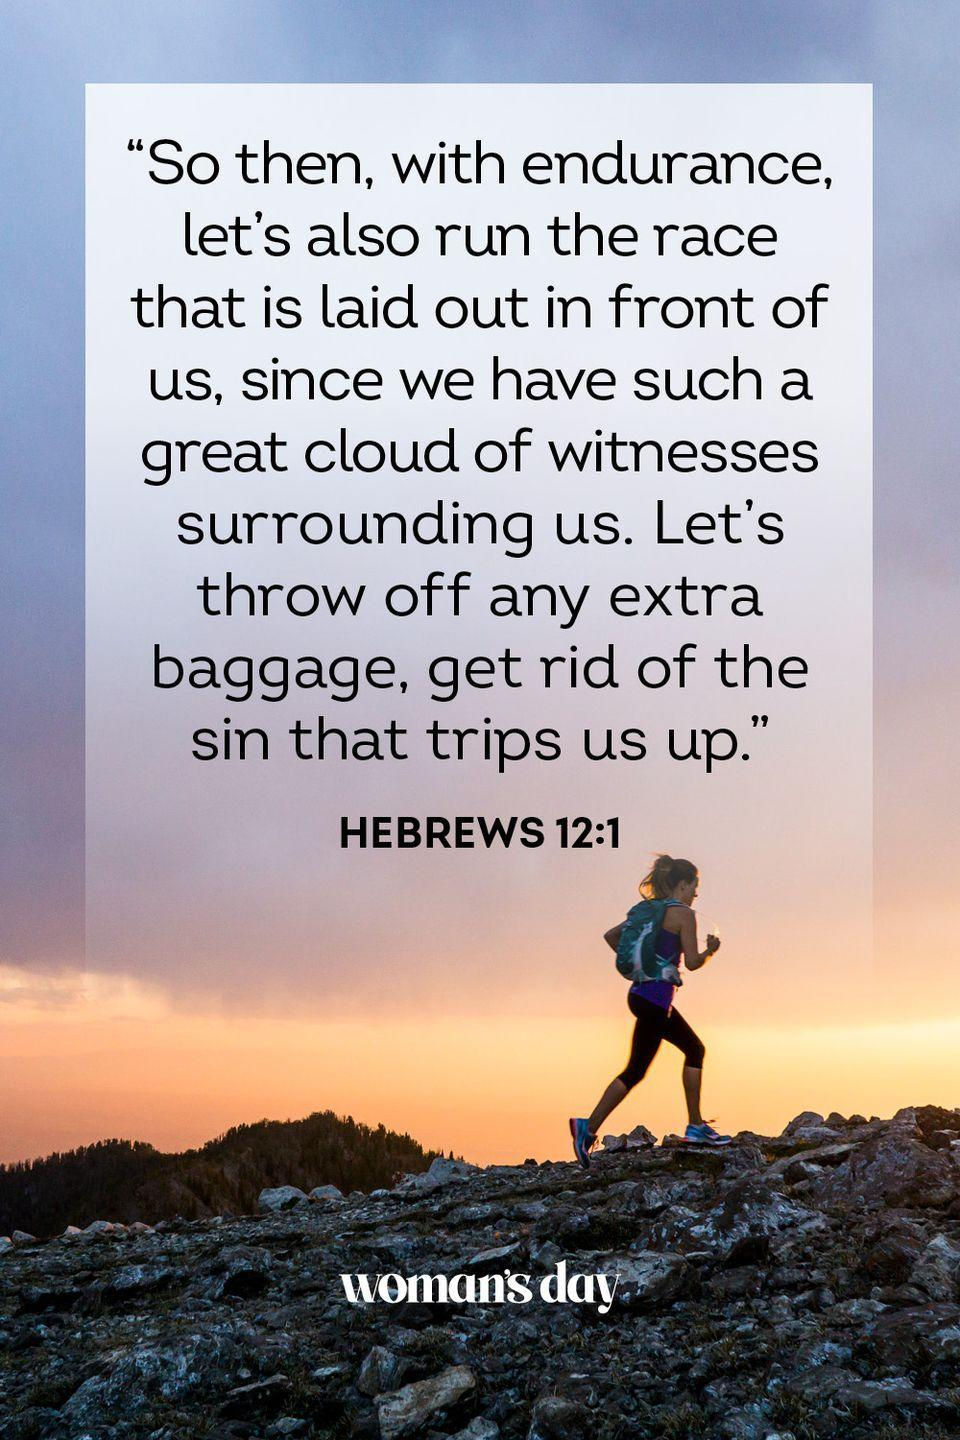 """<p>""""So then, with endurance, let's also run the race that is laid out in front of us, since we have such a great cloud of witnesses surrounding us. Let's throw off any extra baggage, get rid of the sin that trips us up."""" — Hebrews 12:1</p><p><strong>THE GOOD NEWS</strong>: This is the permission you've been looking for to get rid of the things that weigh you down.</p>"""